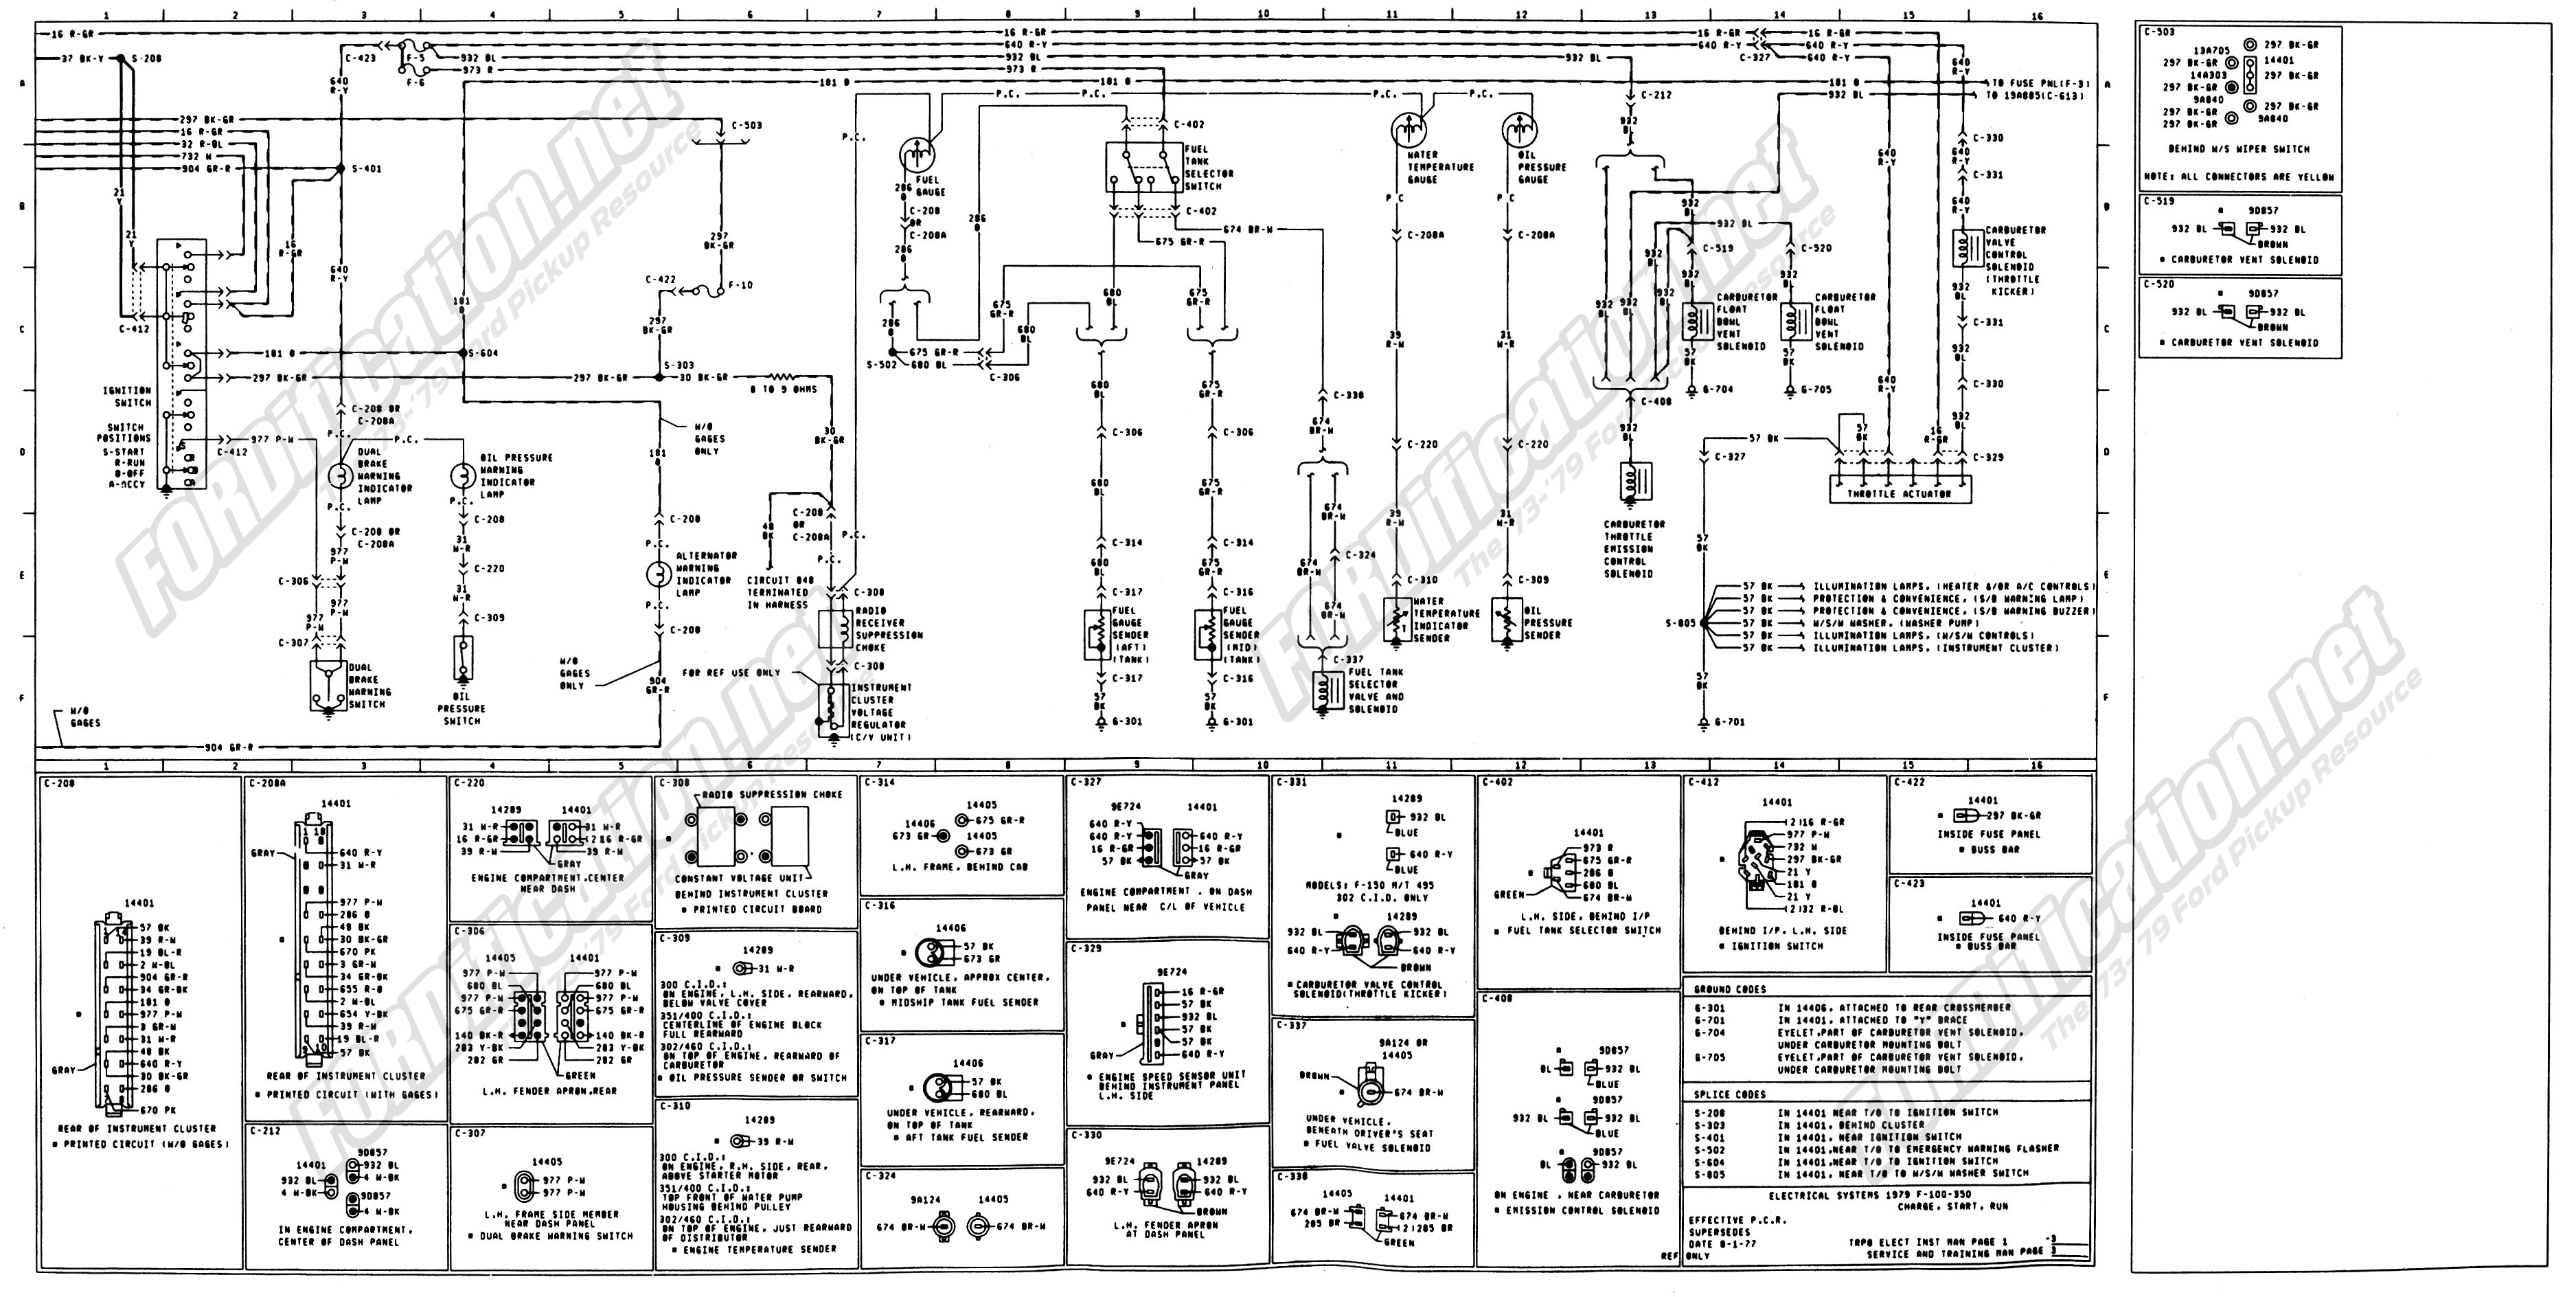 Engine Wiring Diagram 2006 Ford F650 Worksheet And 2001 Fuse Panel F750 Coolant Gauge Schematic Detailed Schematics Rh Jvpacks Com 2004 Headlight Diagrams 2005